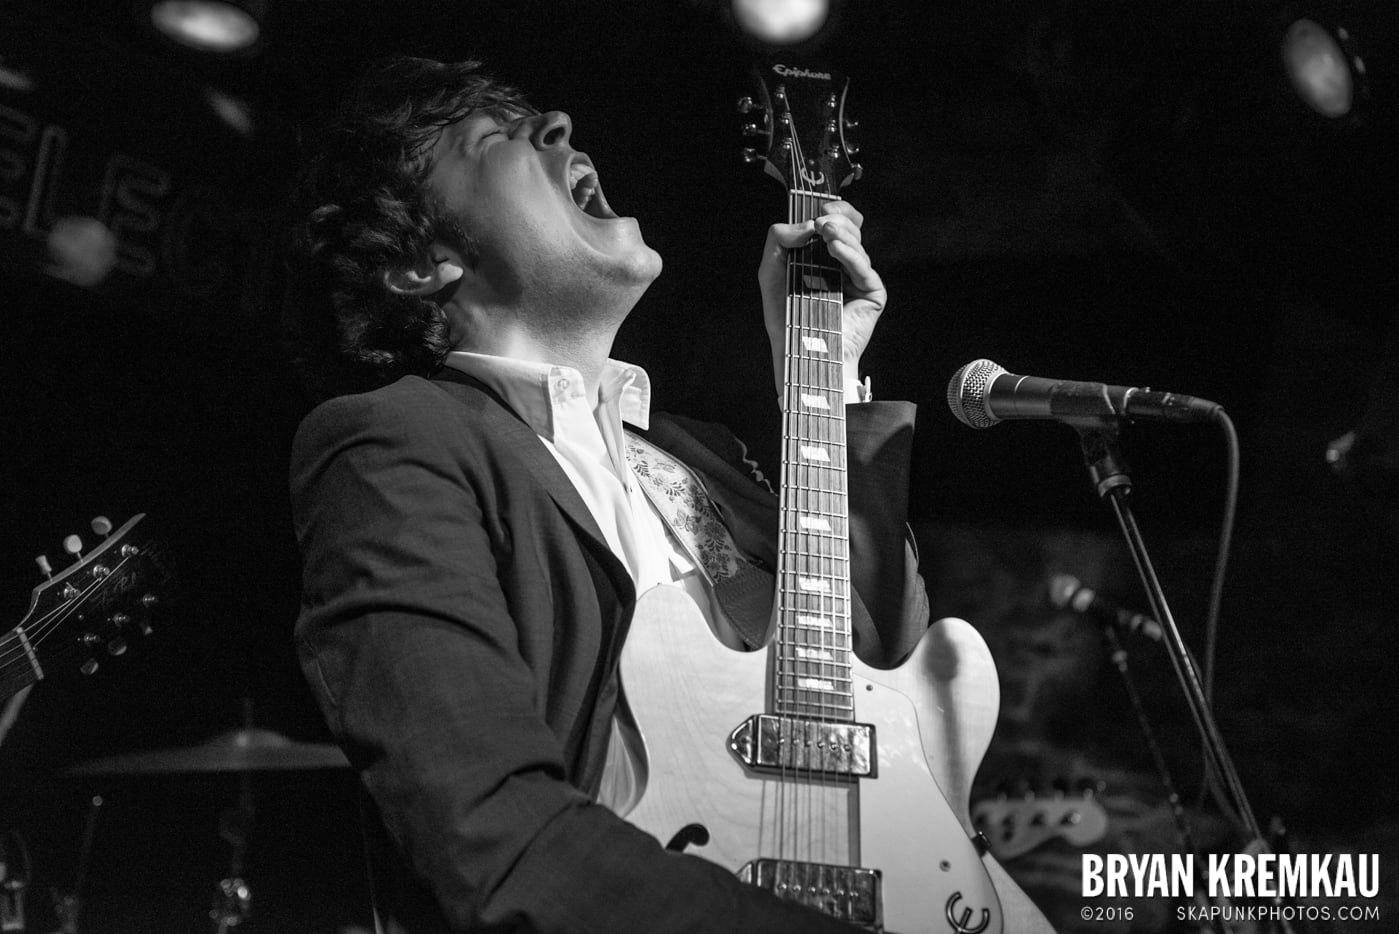 Trapper Schoepp & The Shades @ Bowery Electric, NYC - 11.20.14 (5)